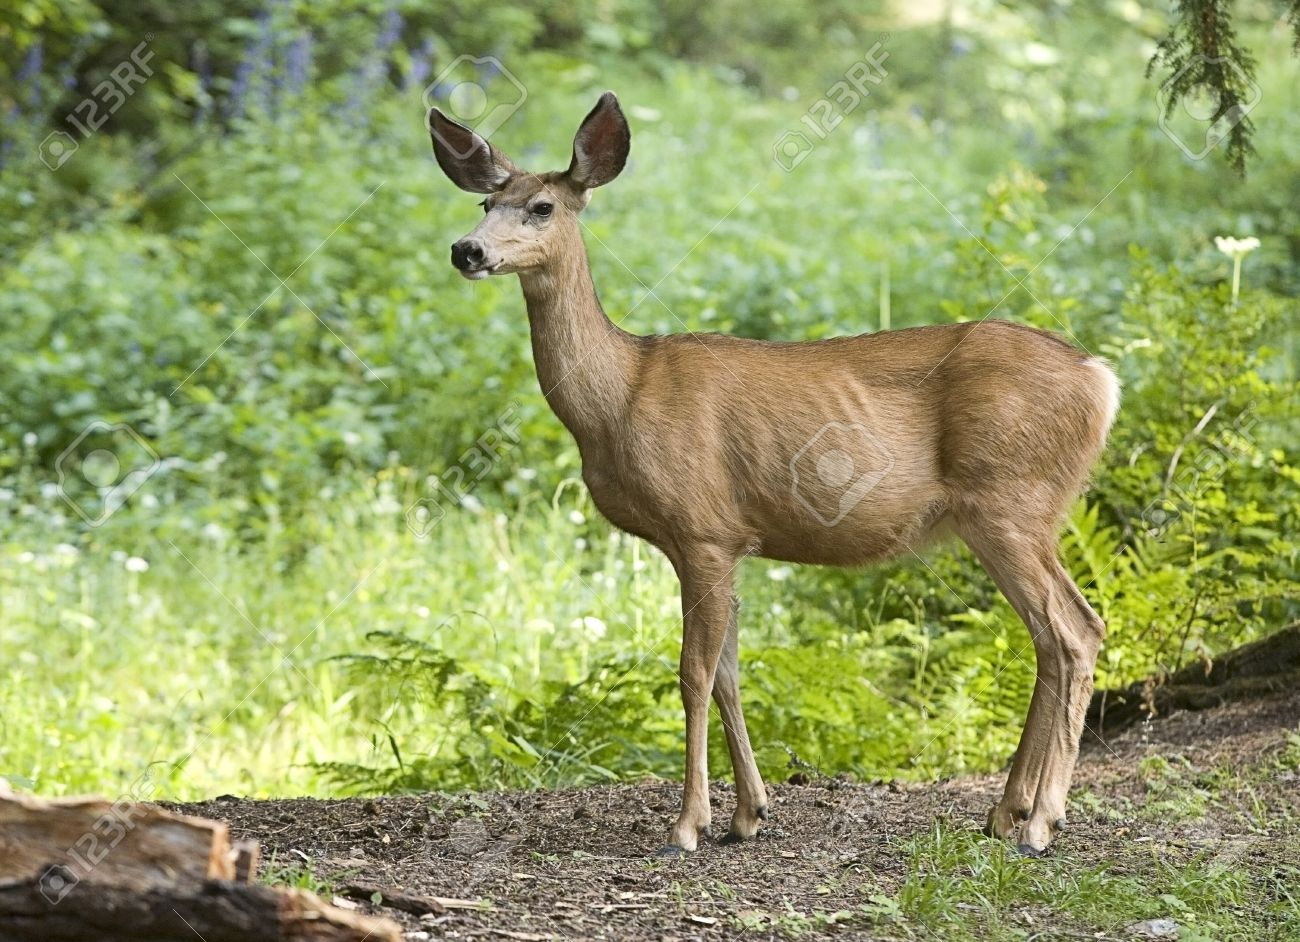 A side view of a whitetail deer in the forest. - 7542746